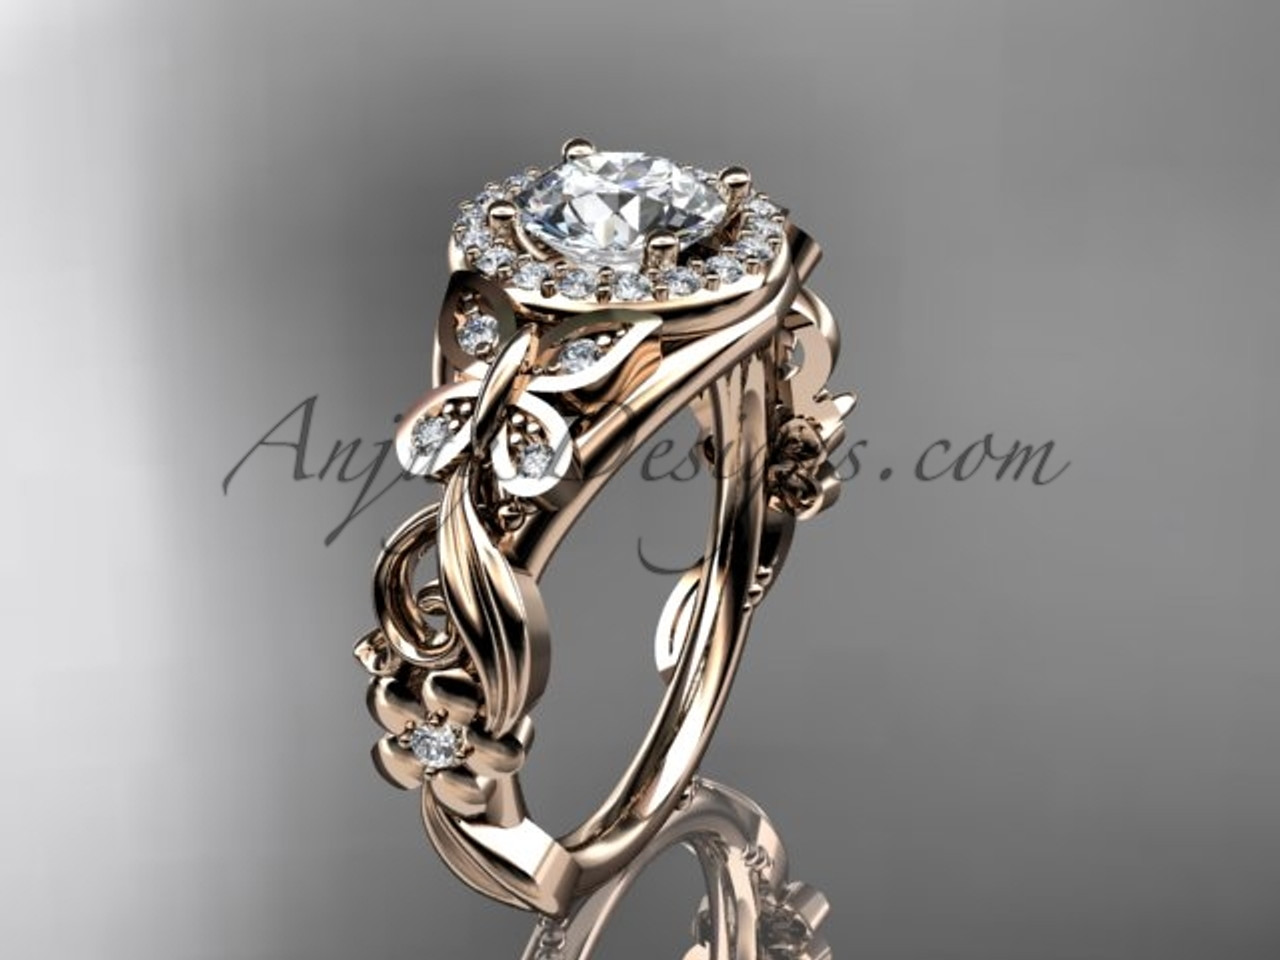 15ad162ea0ab2 Butterfly Engagement Ring 14kt Rose Gold Moissanite Wedding Ring ADLR525